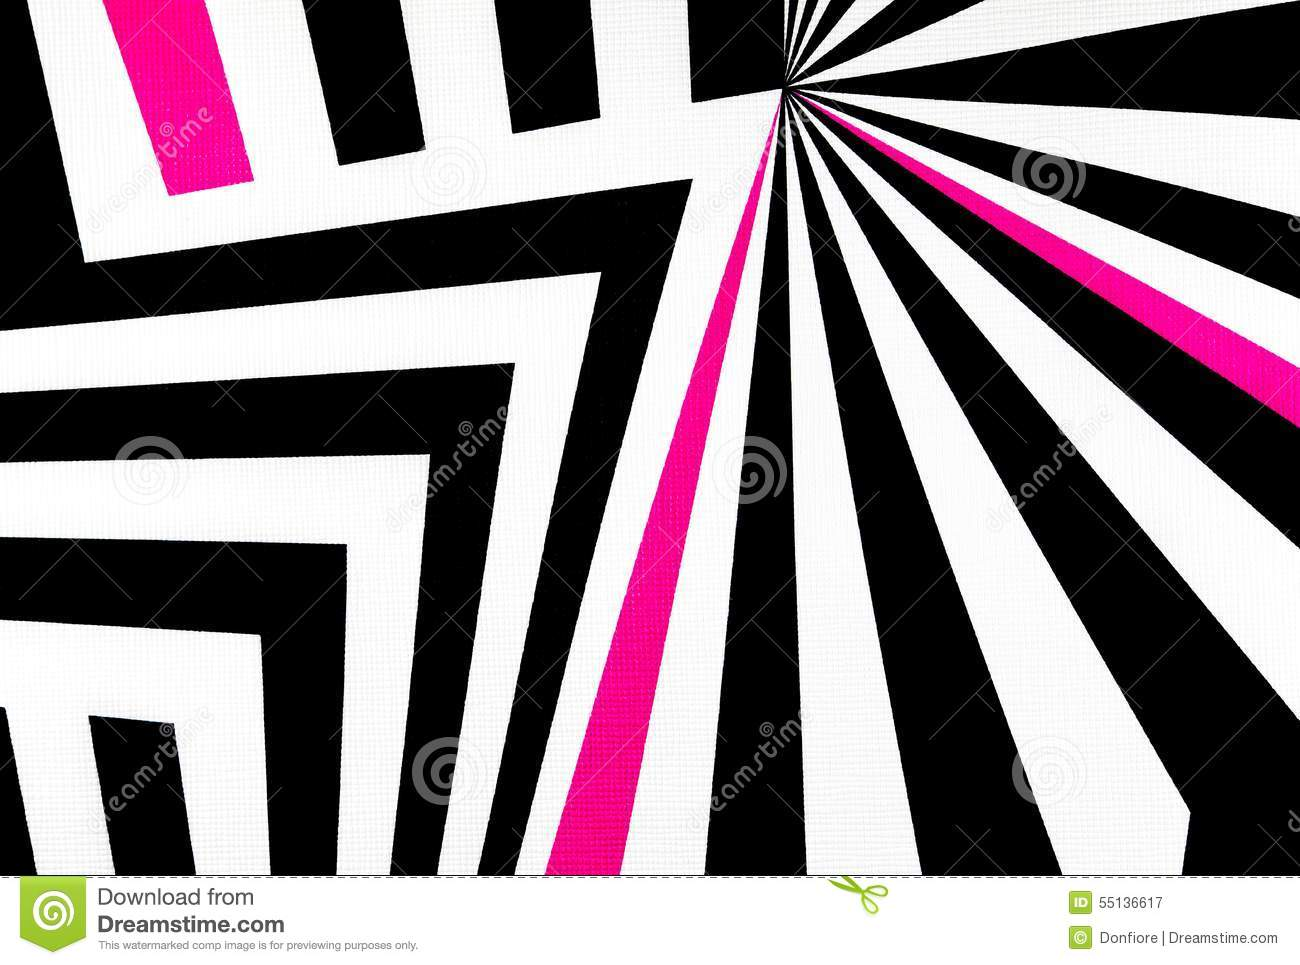 Black and white abstract regular geometric fabric texture background with pink line